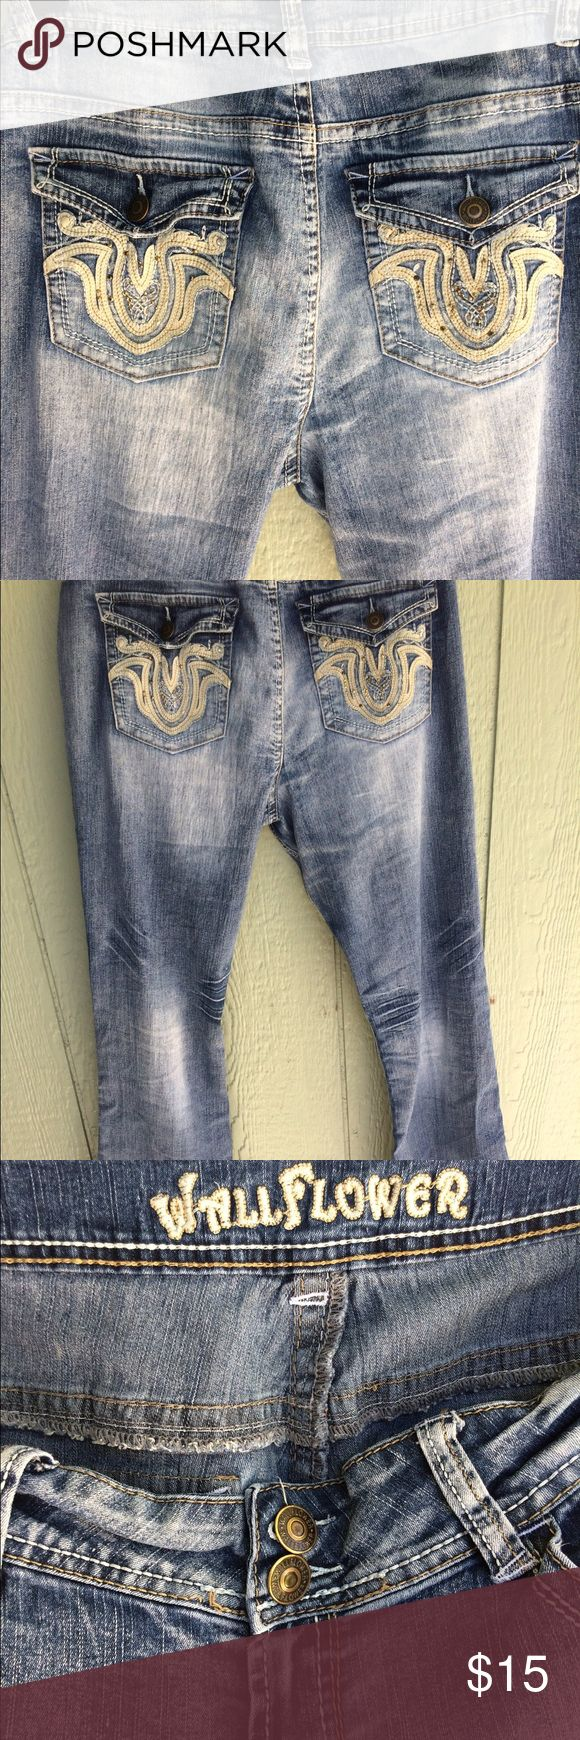 Wallflower Jeans 👖 Wallflower Jeans size 17 inseam is about 31 1/2. Only worn 2 times. They are just too big for me. Very comfy and stretchy material. Great condition with no flaws and no fray! Wallflower Jeans Boot Cut